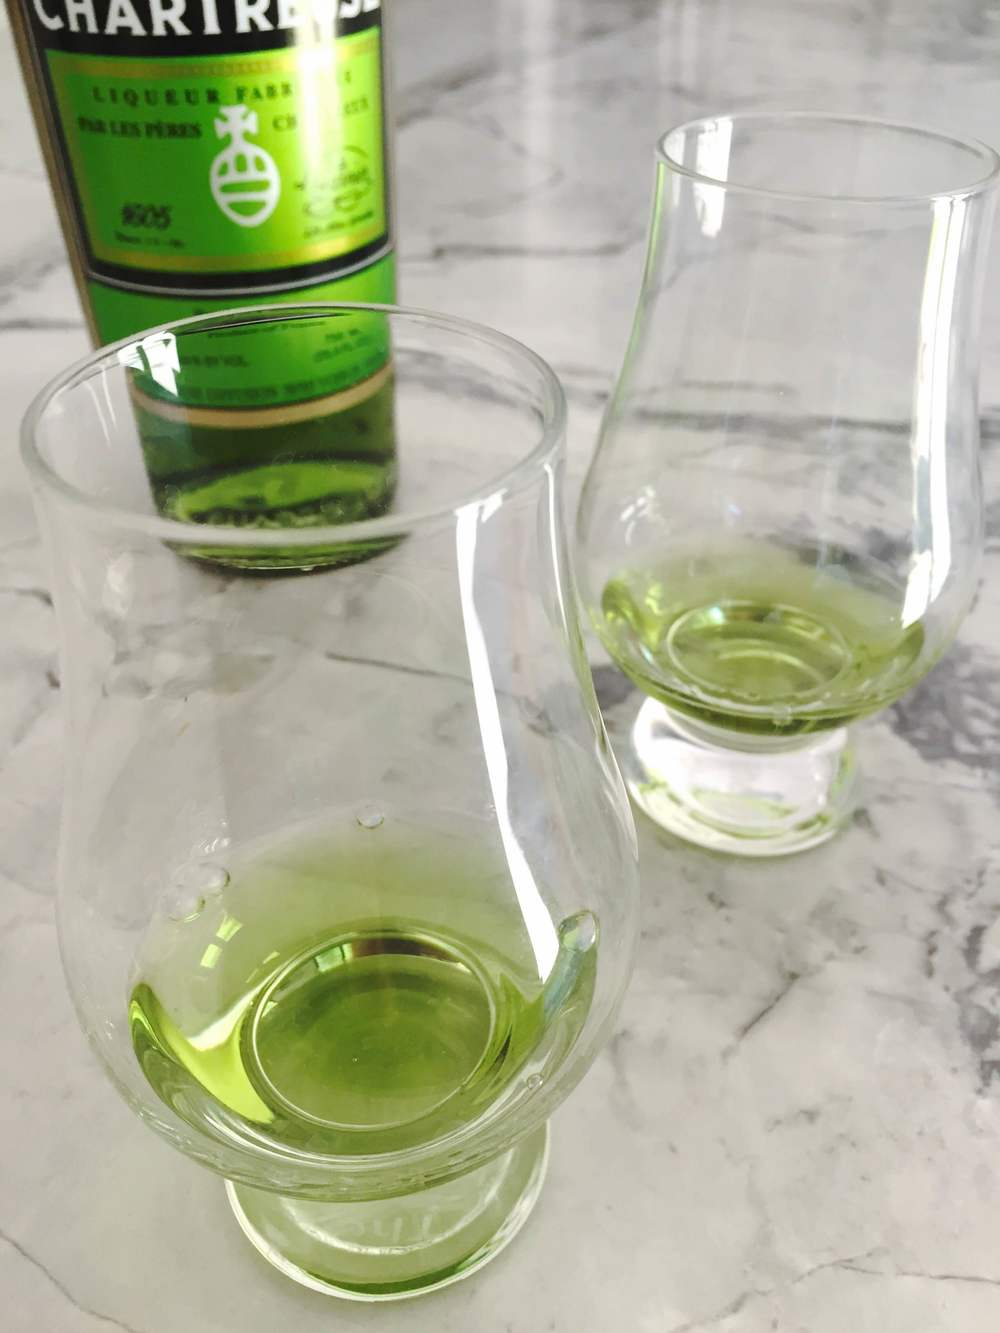 So green. So evil on its own. Maleficent. The Wicked Witch of the West. All green! I'm on to you, Chartreuse.